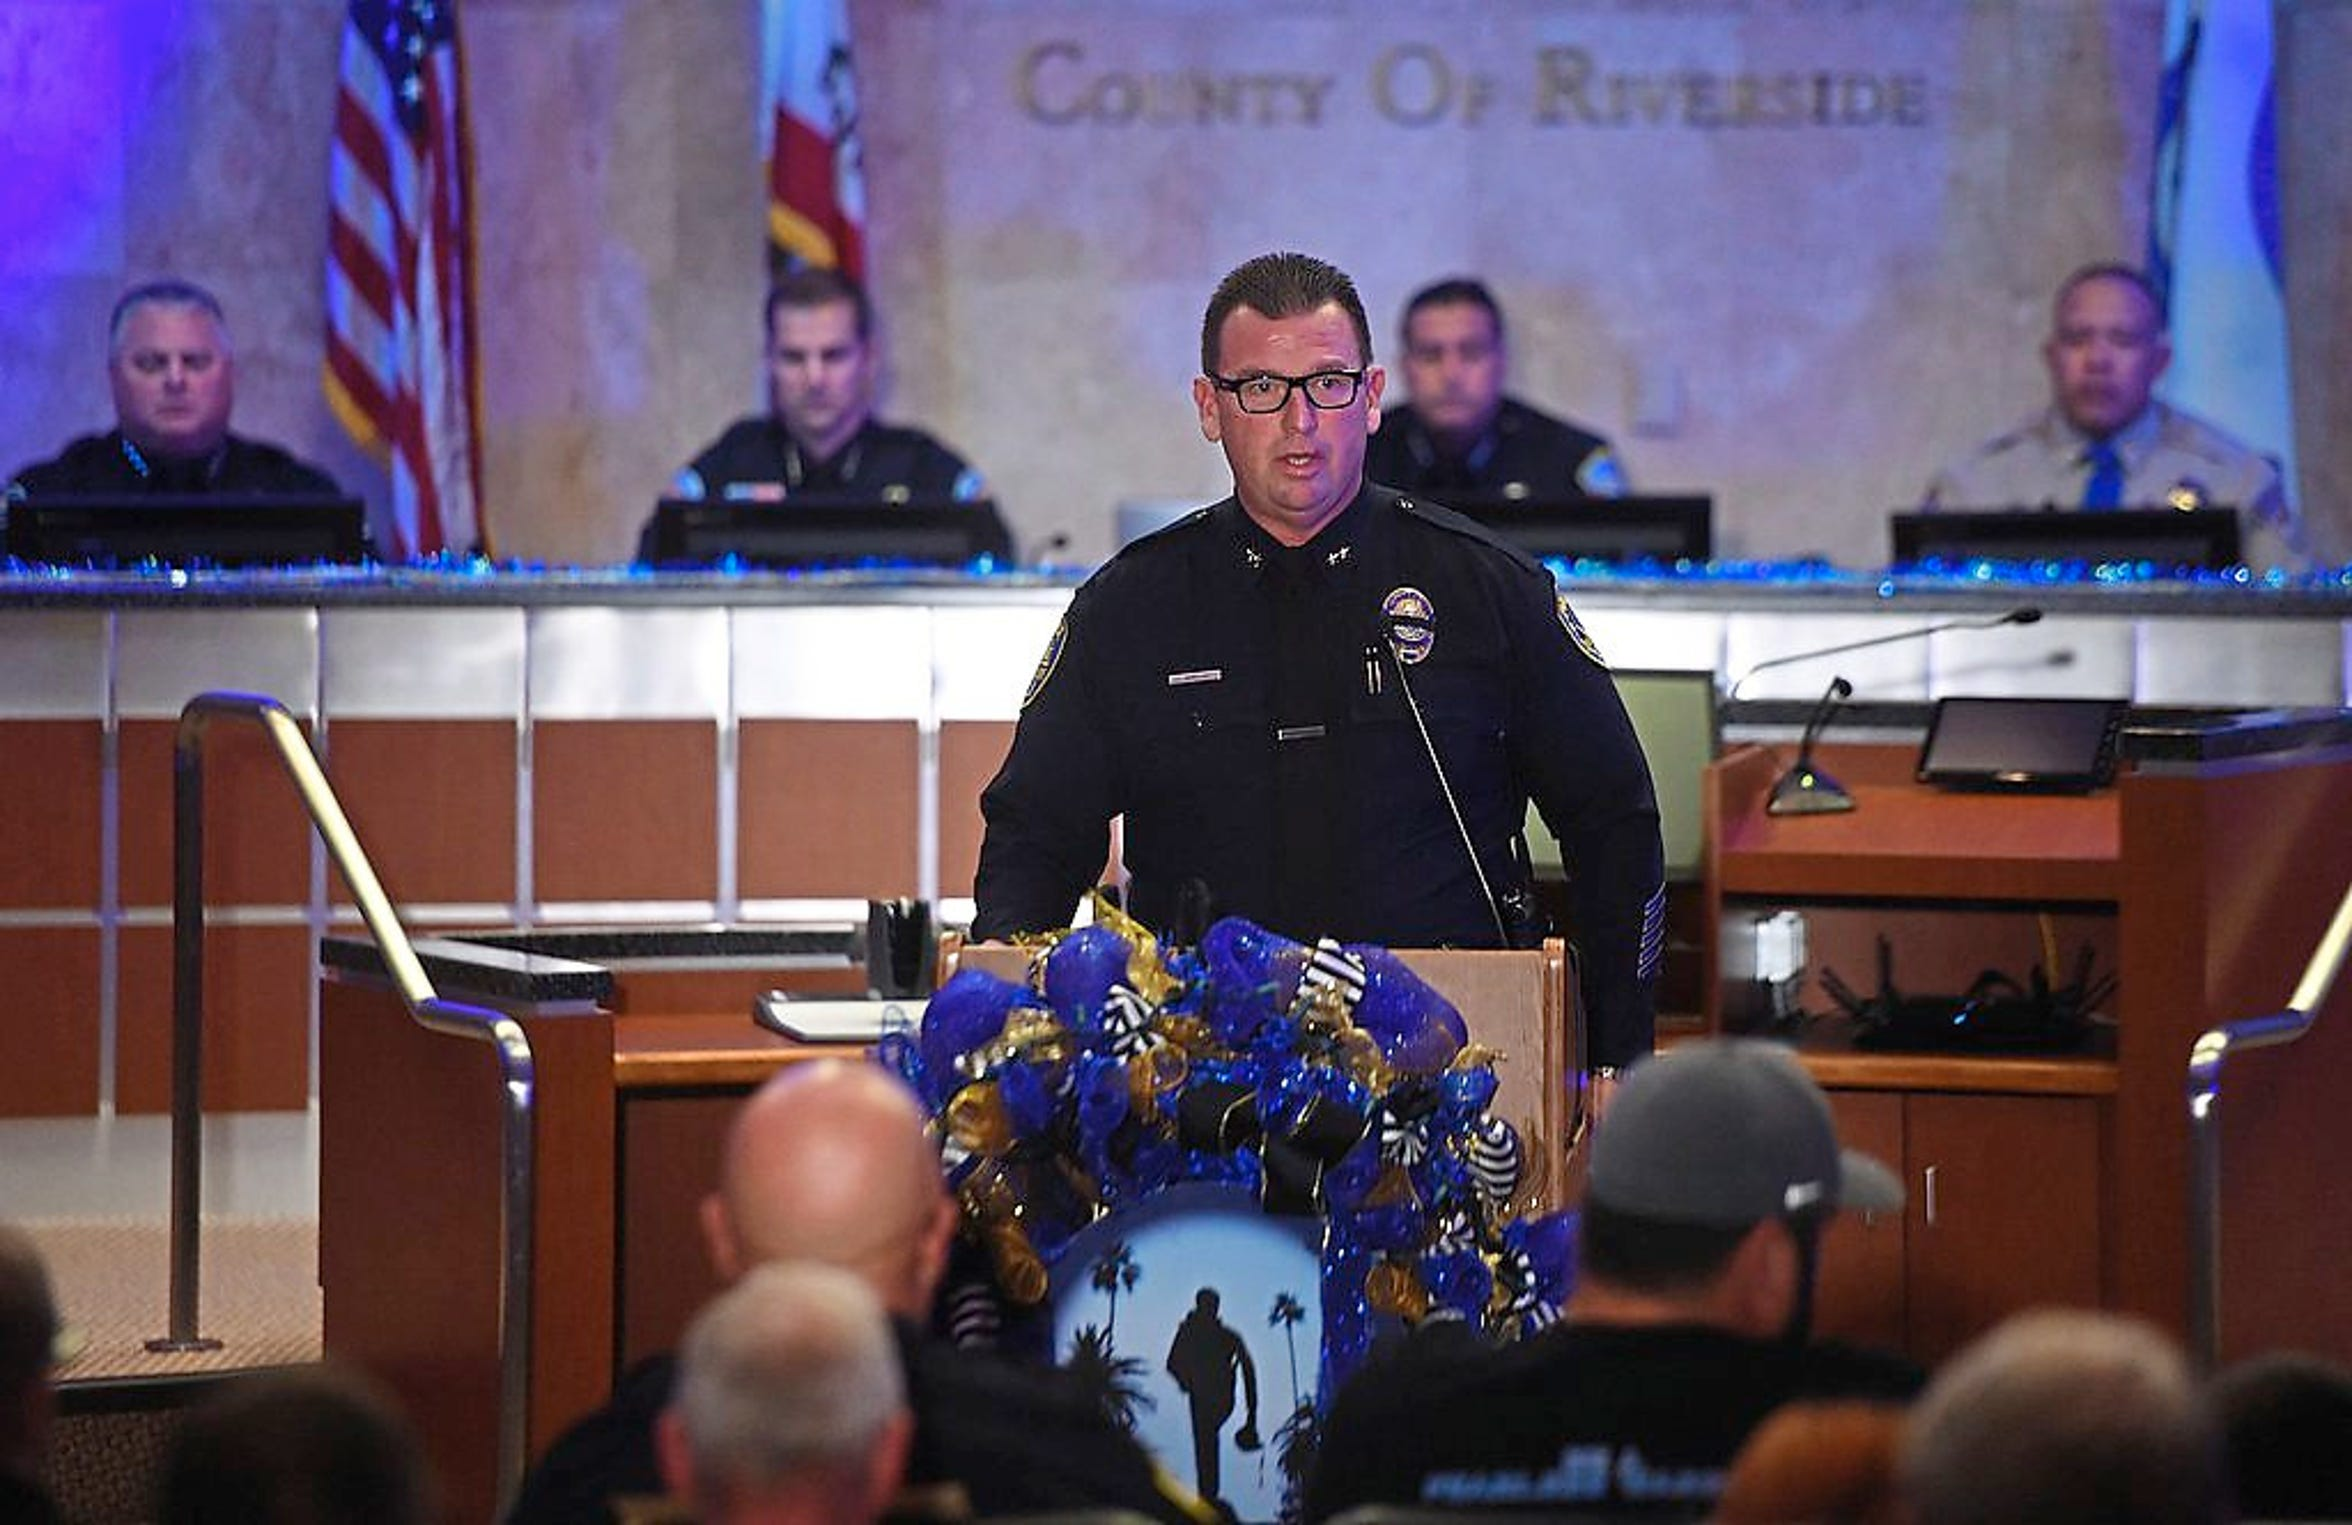 Riverside Police Department's acting chief, Larry Gonzalez, is vying for the permanent post despite a drunken driving conviction. He was a lieutenant in 2013 when he pleaded guilty after reportedly crashing a city-owned SUV.